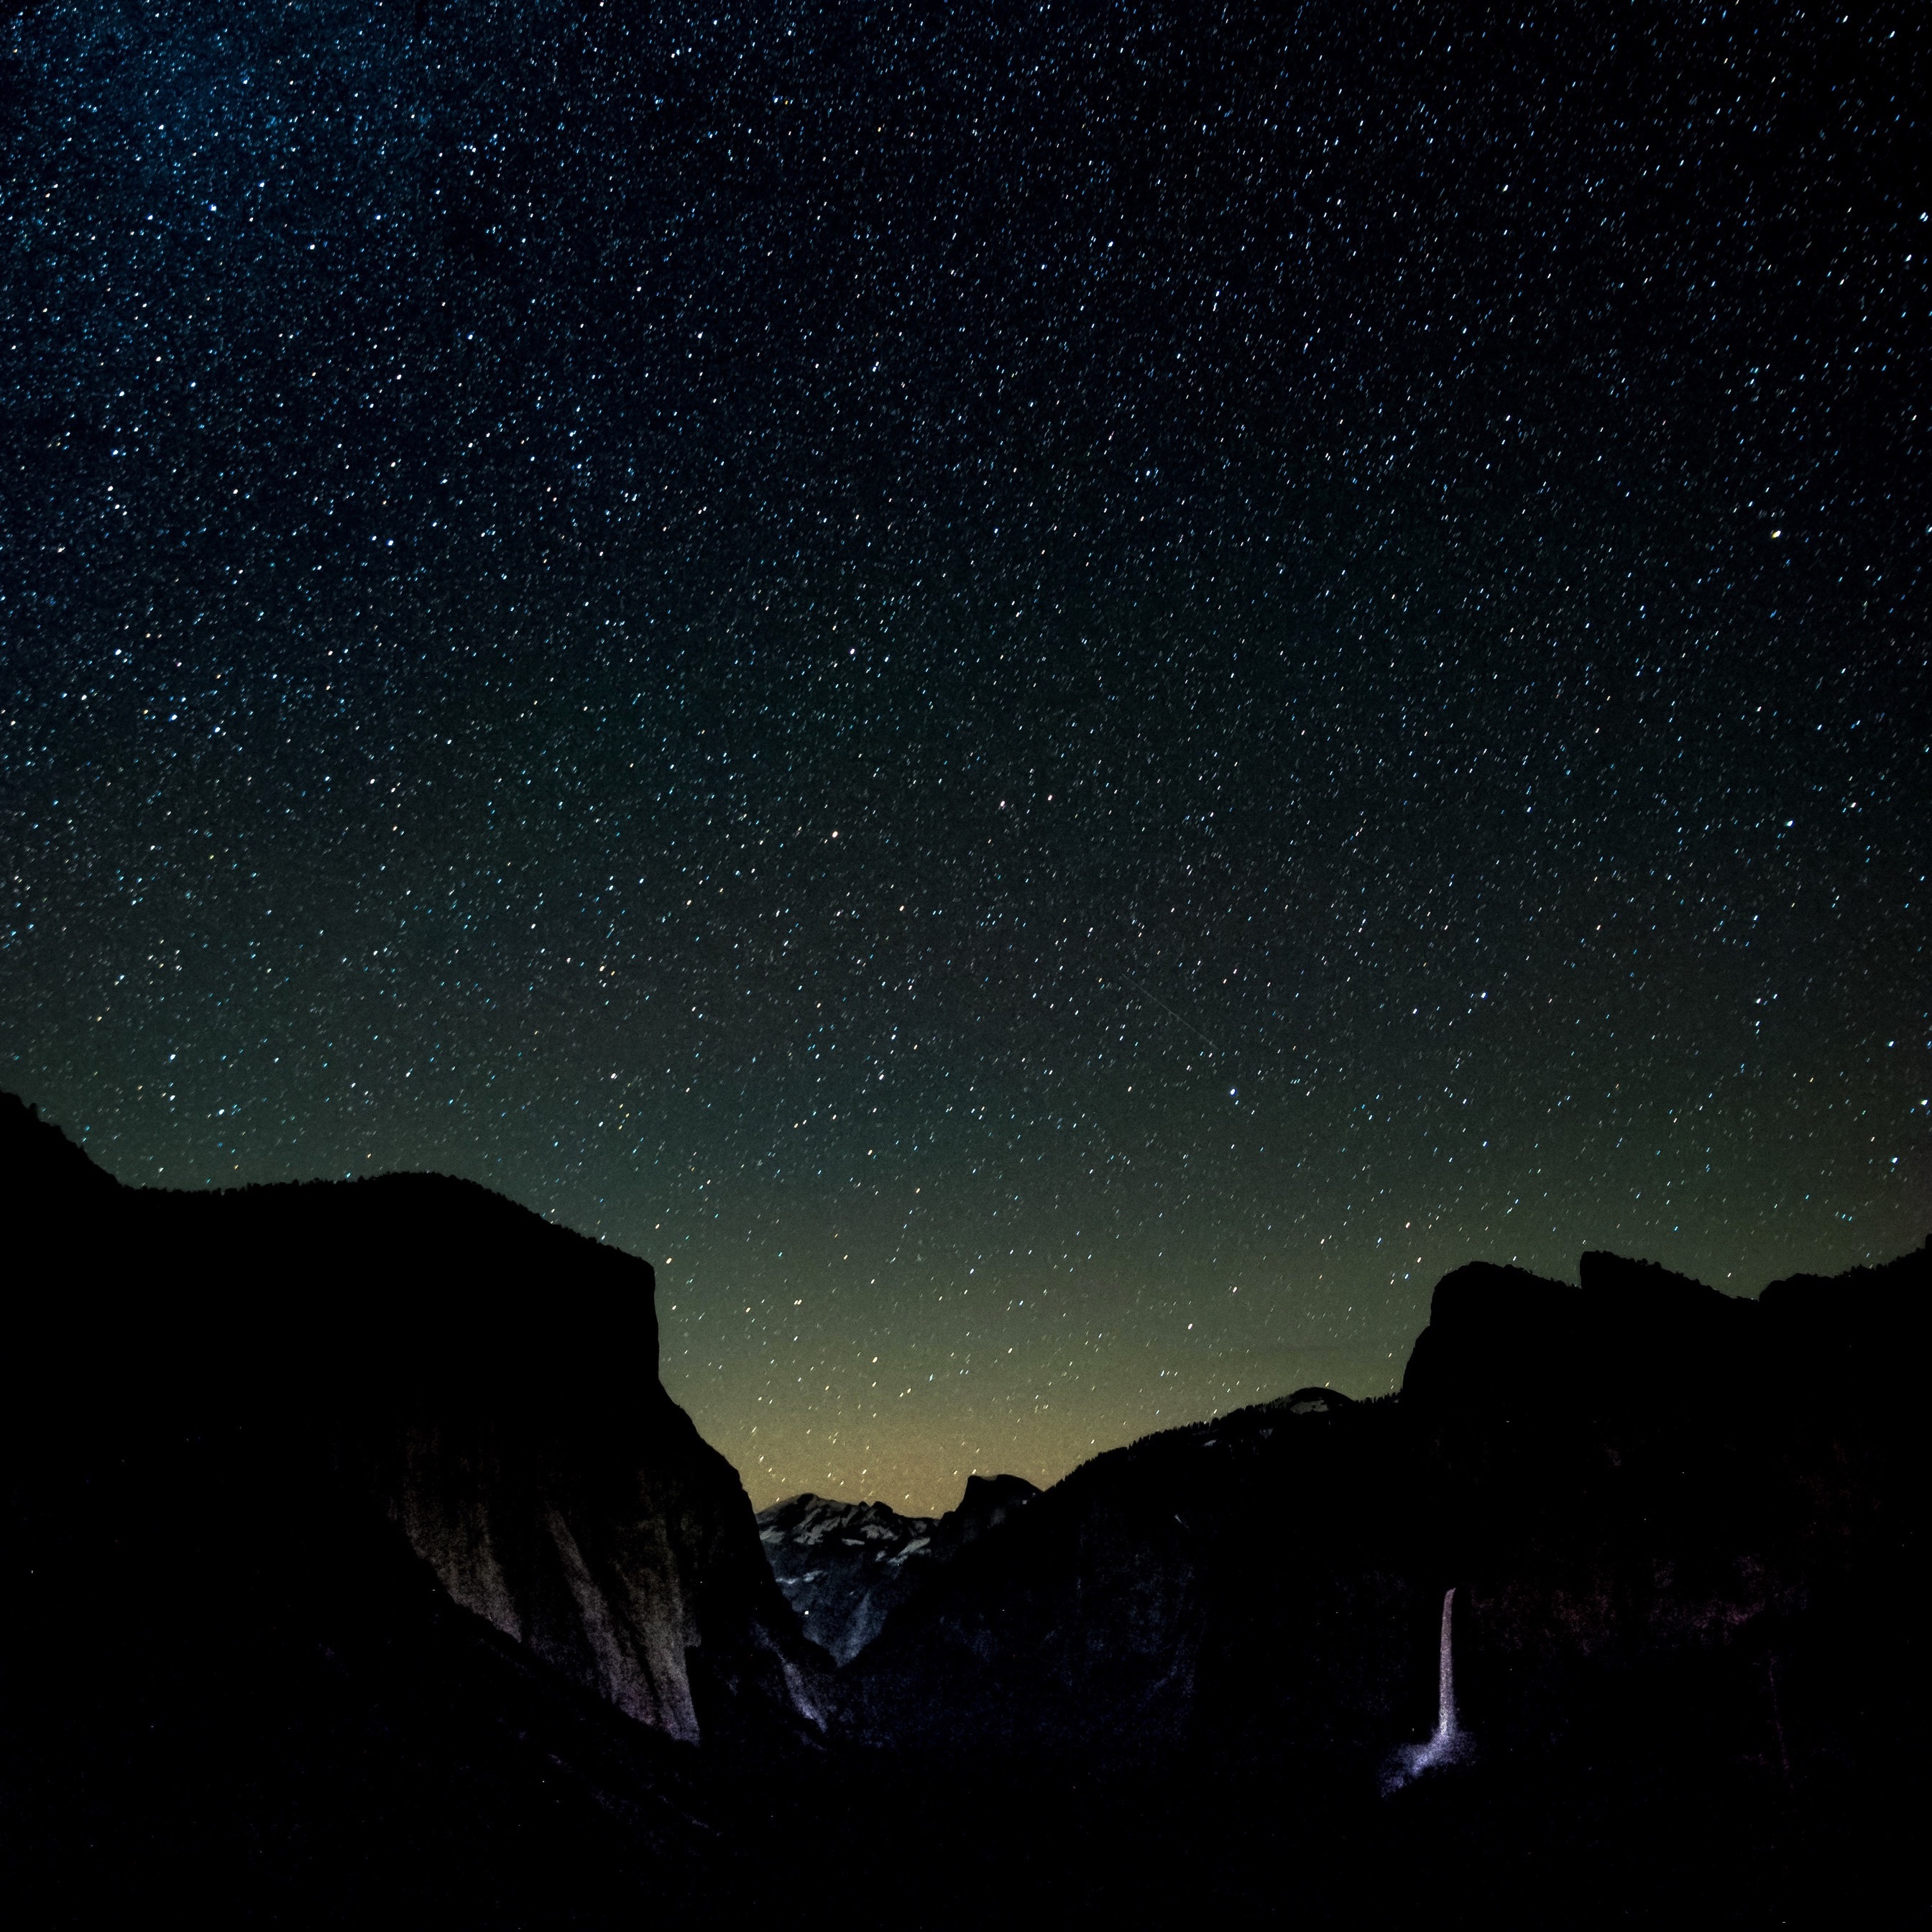 Wallpaper Weekends: Starry Night Wallpapers for iPhone